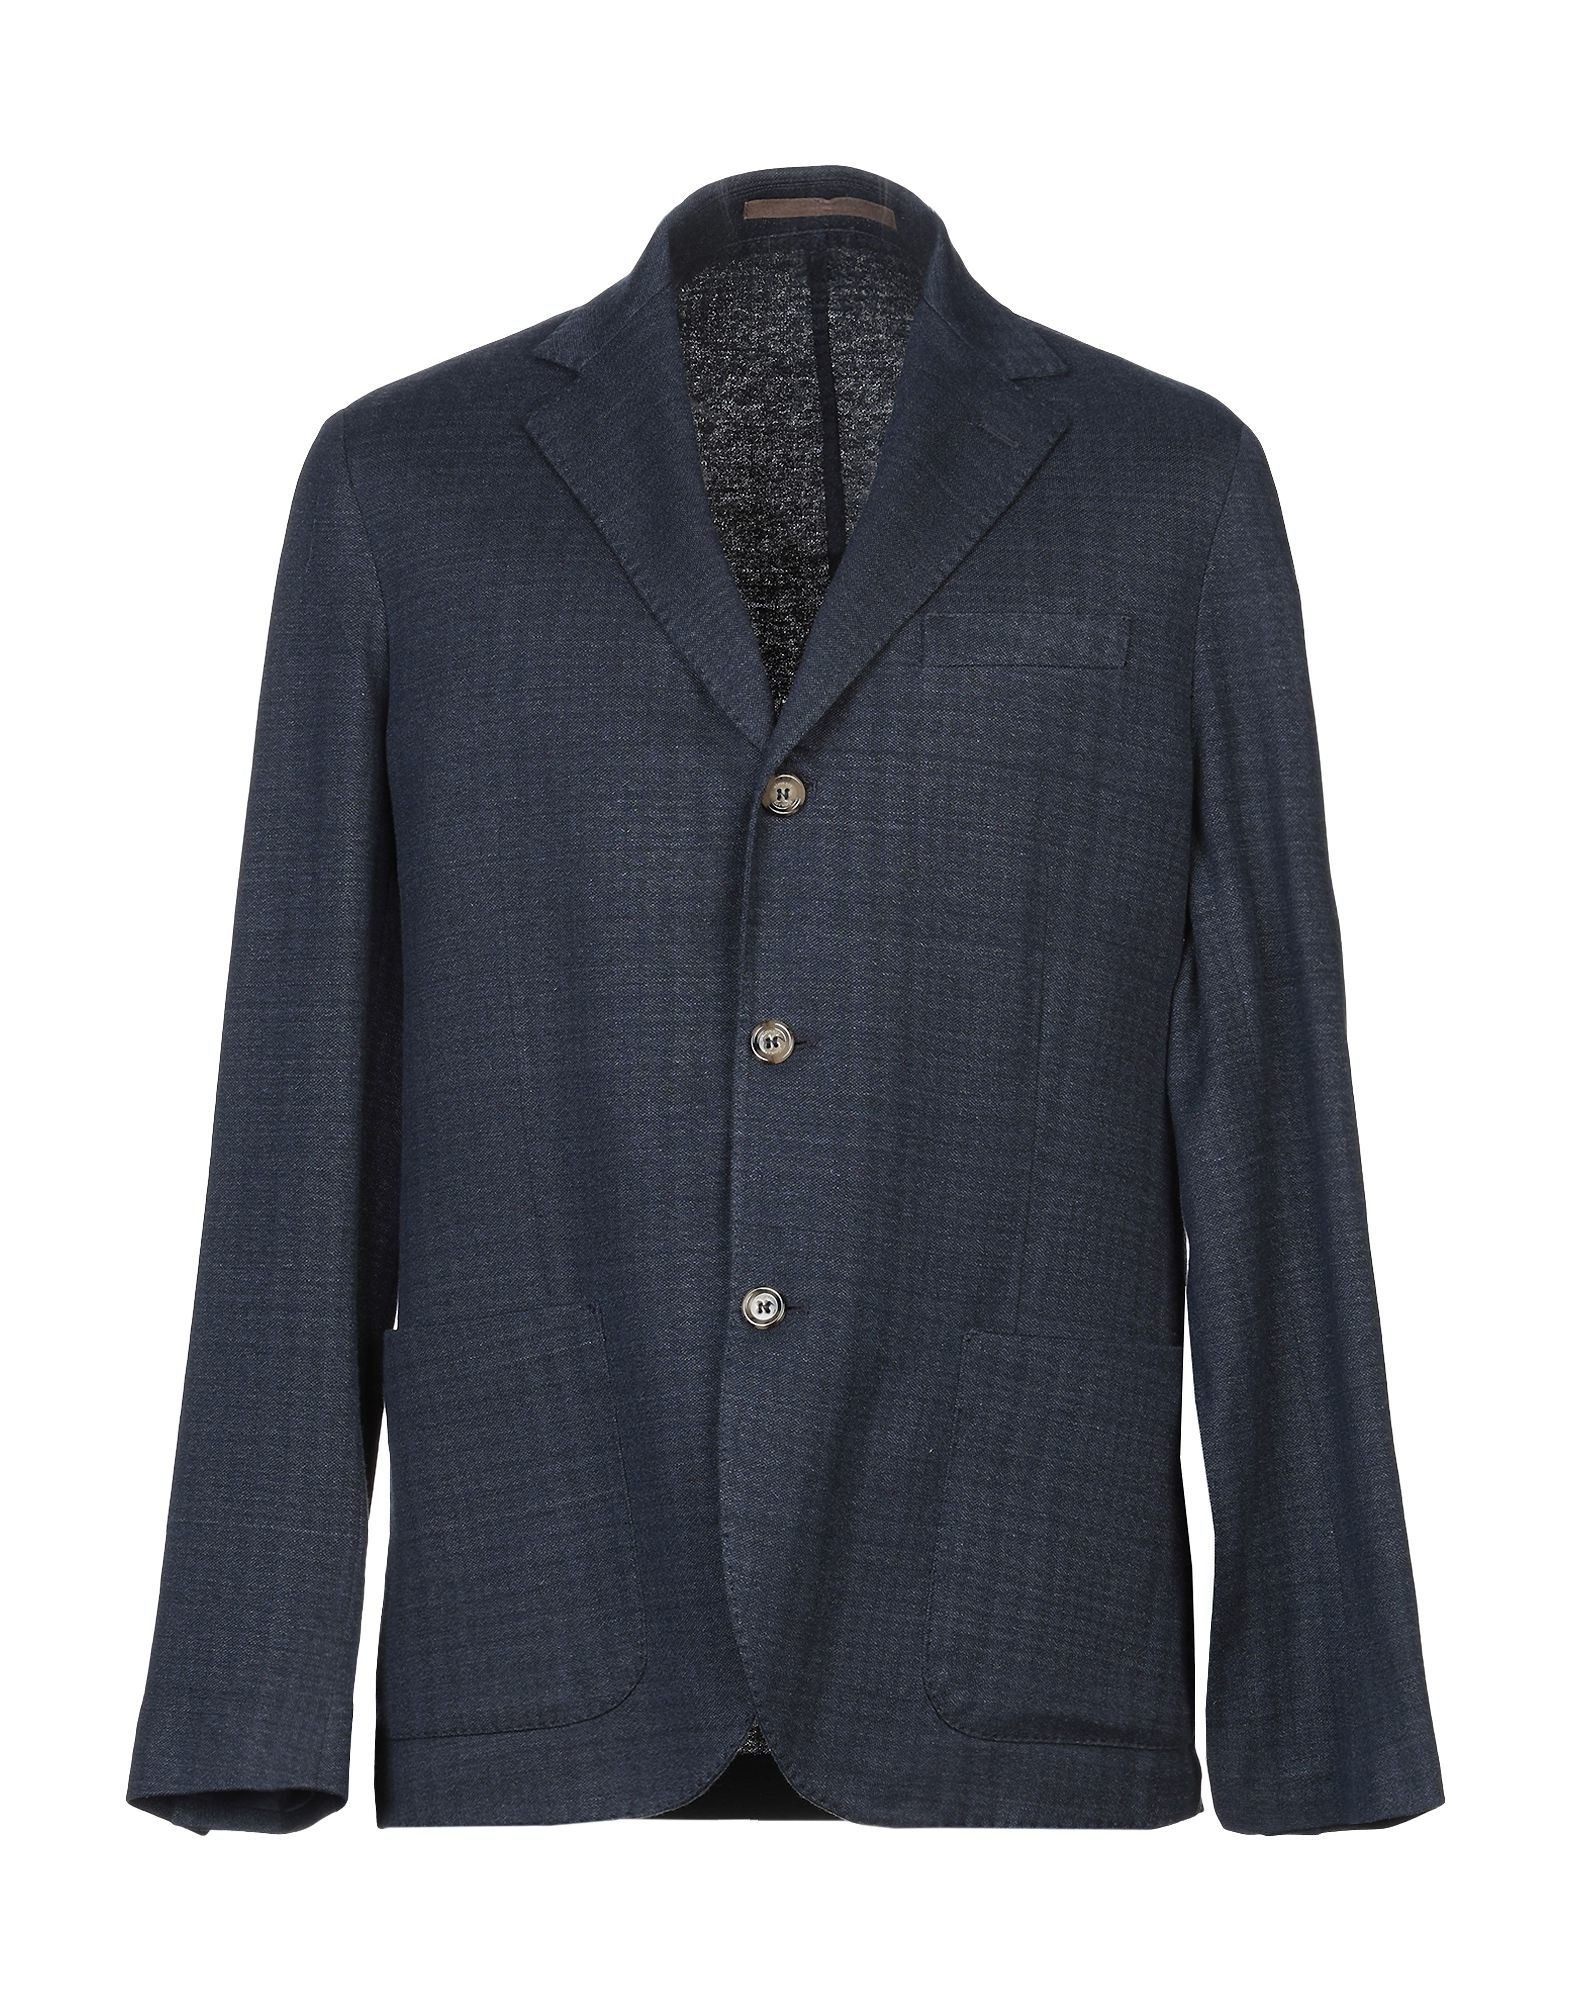 ELEVENTY Suit jackets. piqué, no appliqués, two-tone, multipockets, single chest pocket, two inside pockets, button closing, lapel collar, single-breasted, long sleeves, unlined, dual back vents, single-breasted jacket. 51% Linen, 44% Cotton, 5% Polyamide